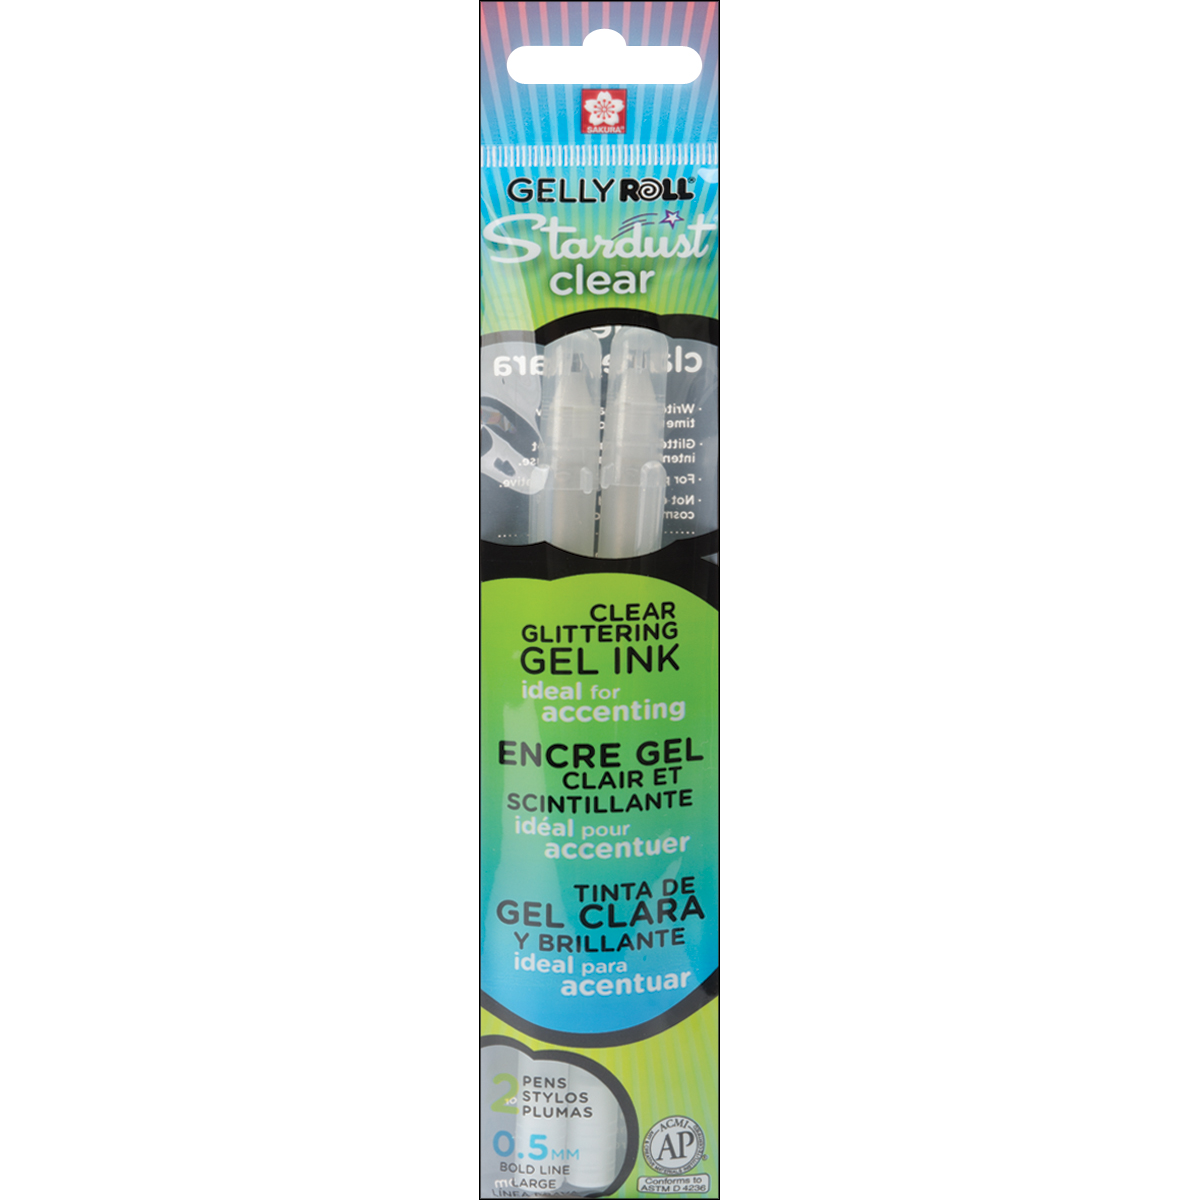 CLEAR     -GELLY ROLL STARD 2PK